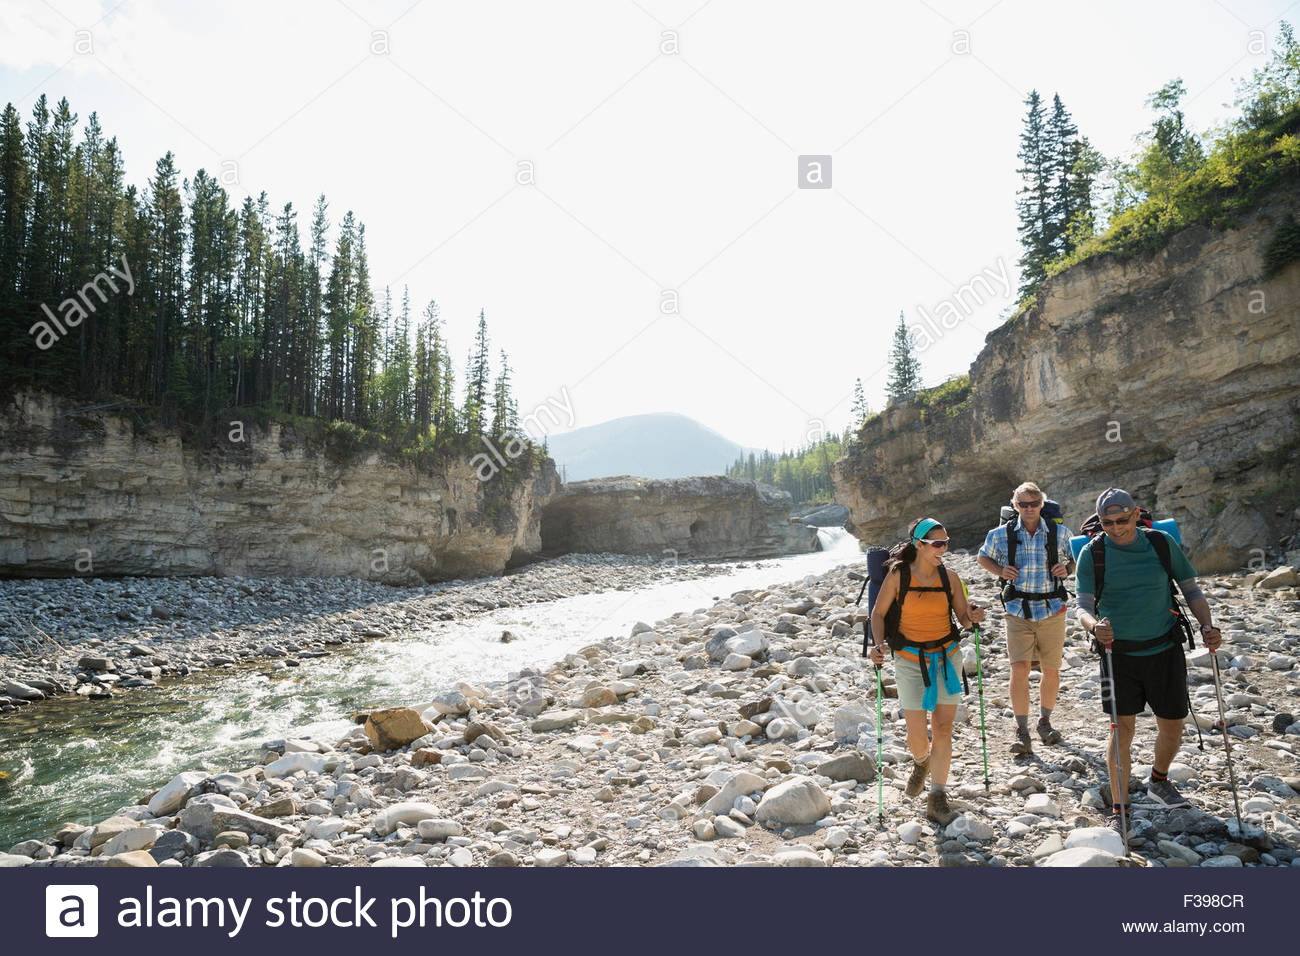 Hikers with backpacks hiking along craggy riverside - Stock Image